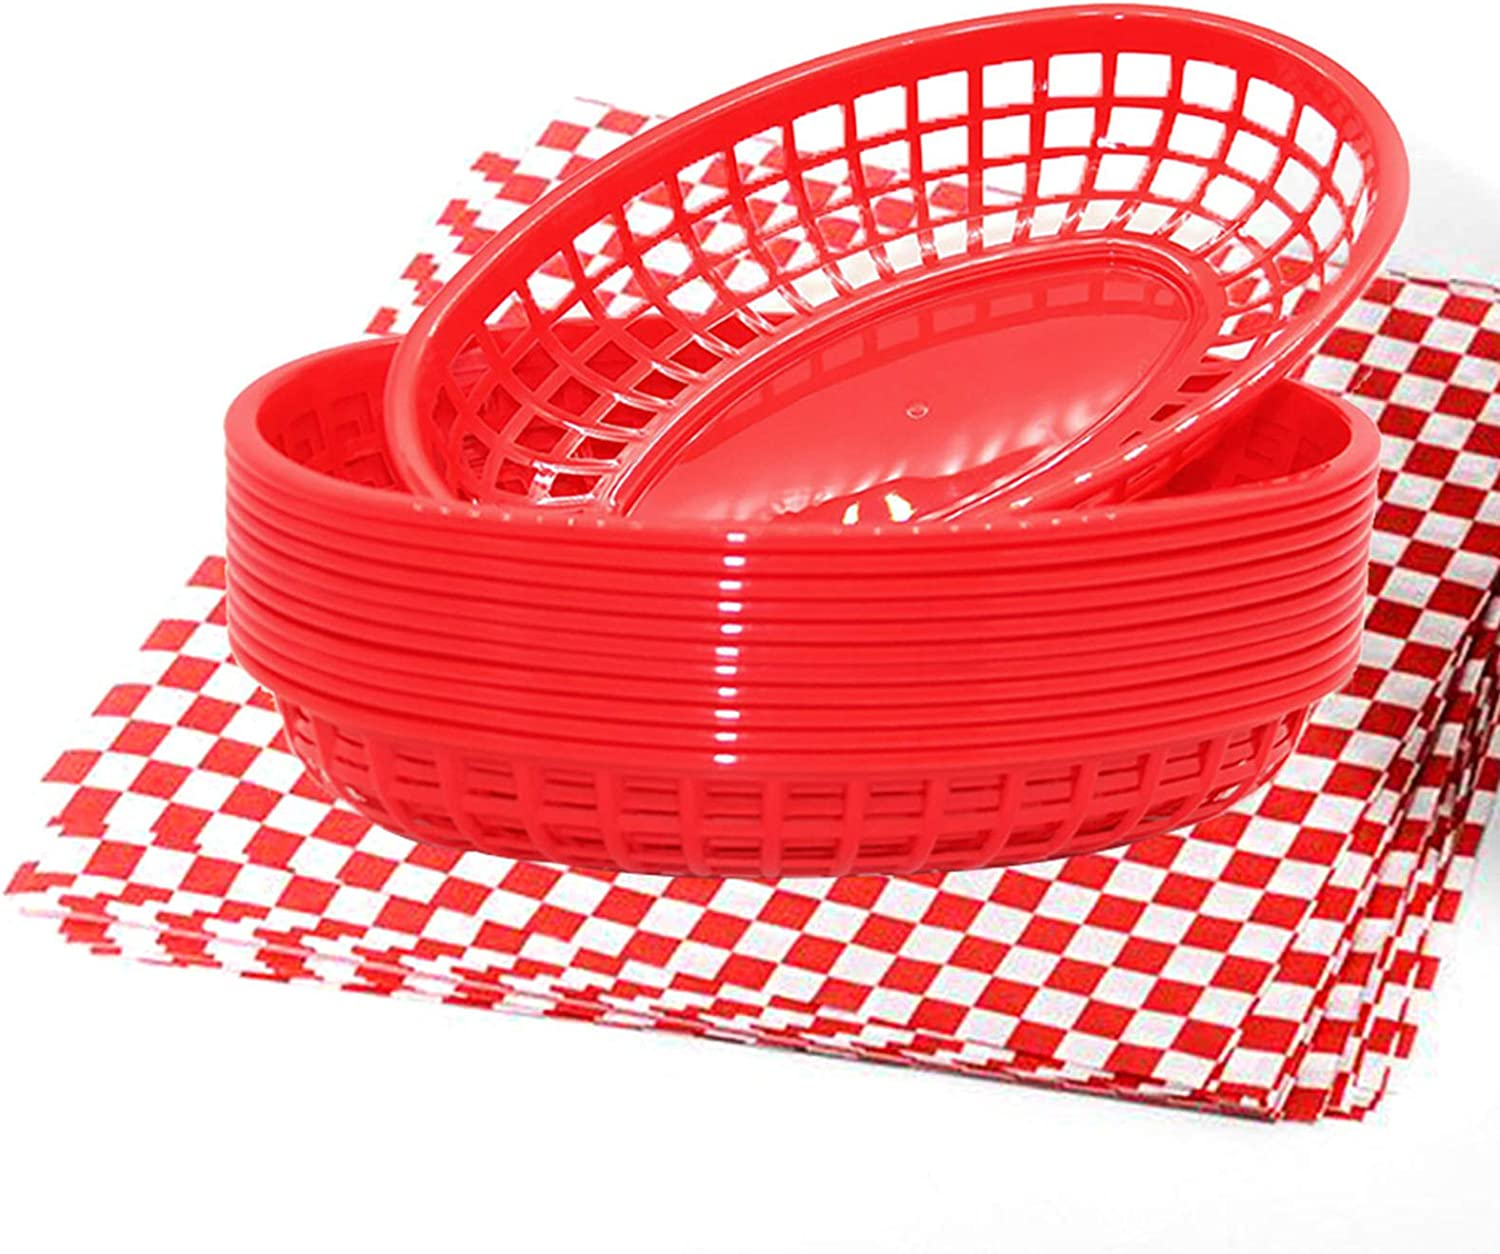 FEOOWV 12Pcs Oval-Shaped Plastic Fast Food Basket and 100 Pcs Checkered Paper for Fast Food Restaurant Supplies, Deli Serving, Bread Baskets, Burgers, Sandwiches & Fries (Red)